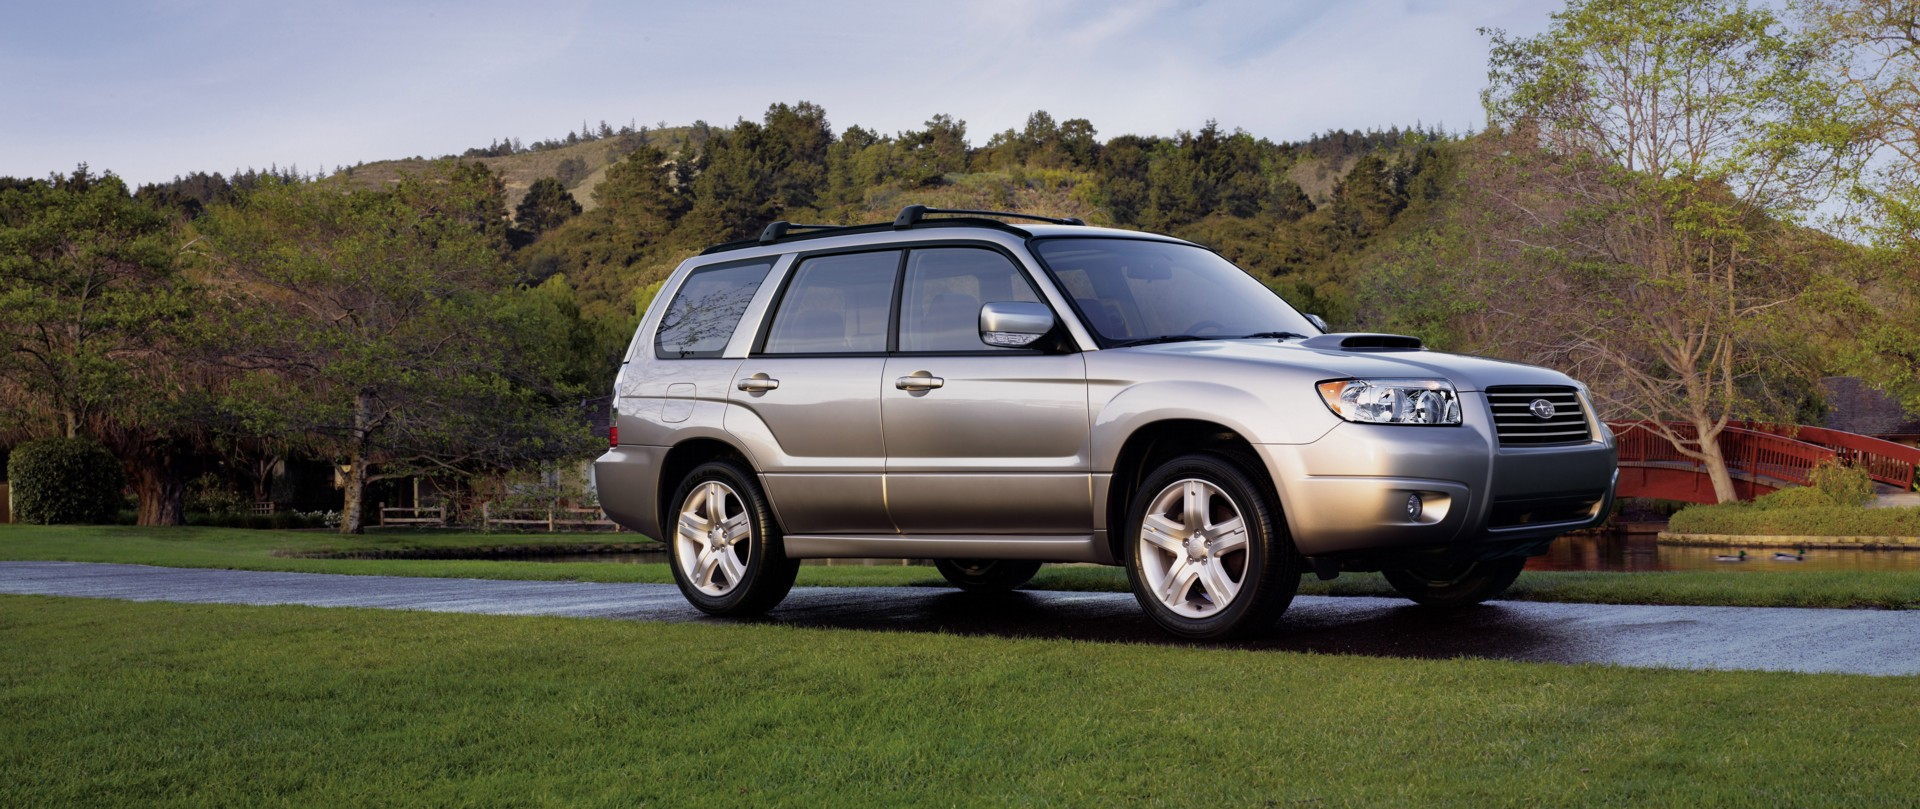 2007 subaru forester pictures history value research news conceptcarz com